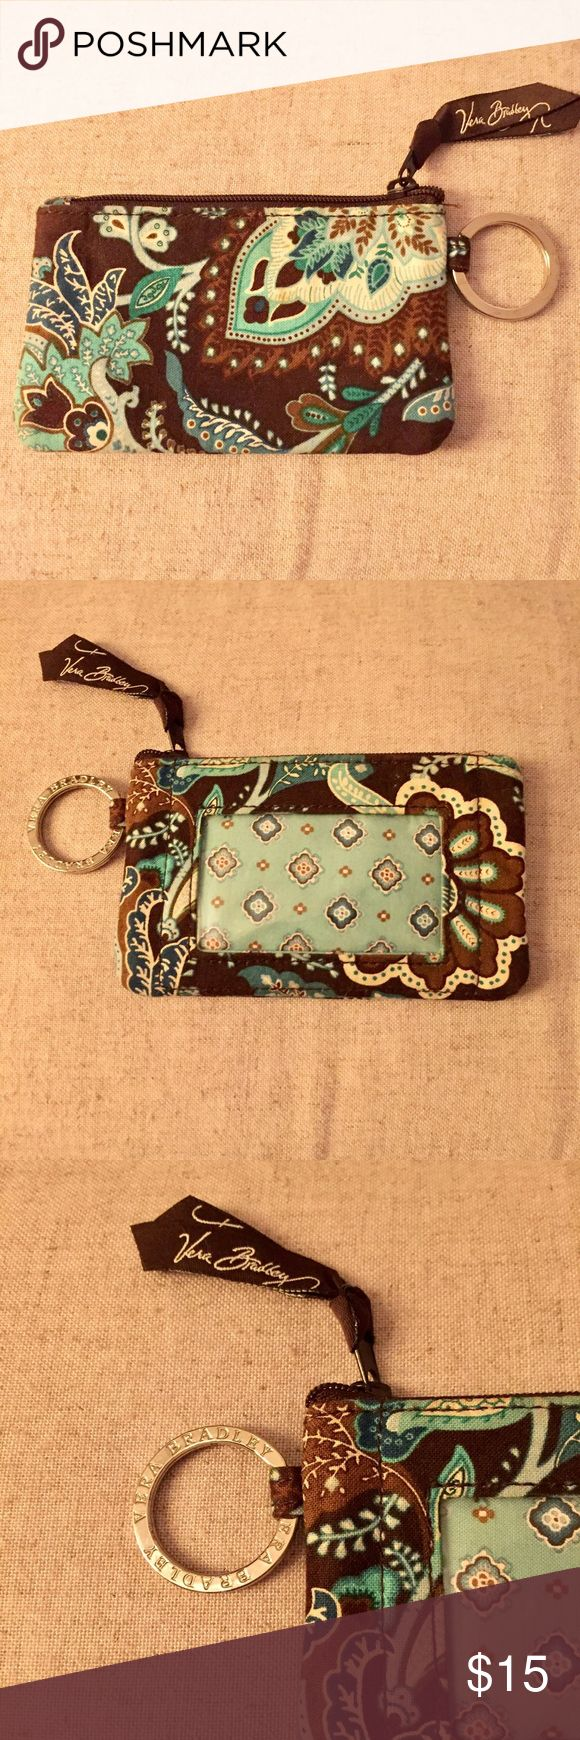 Vera Bradley ID & Coin Holder + Cute and functional!  + Vera Bradley silver ring accent  + Zip closure  + ID window slot  + Font forget to bundle 🛍  ⭐️All items are steamed cleaned and shipped within 48 hours of your purchase. ⭐️If you would like any additional photos or have any questions please let me know. ⭐️Sorry, no trades. But will listen to ALL fair offers. Thanks for shopping! Vera Bradley Bags Wallets